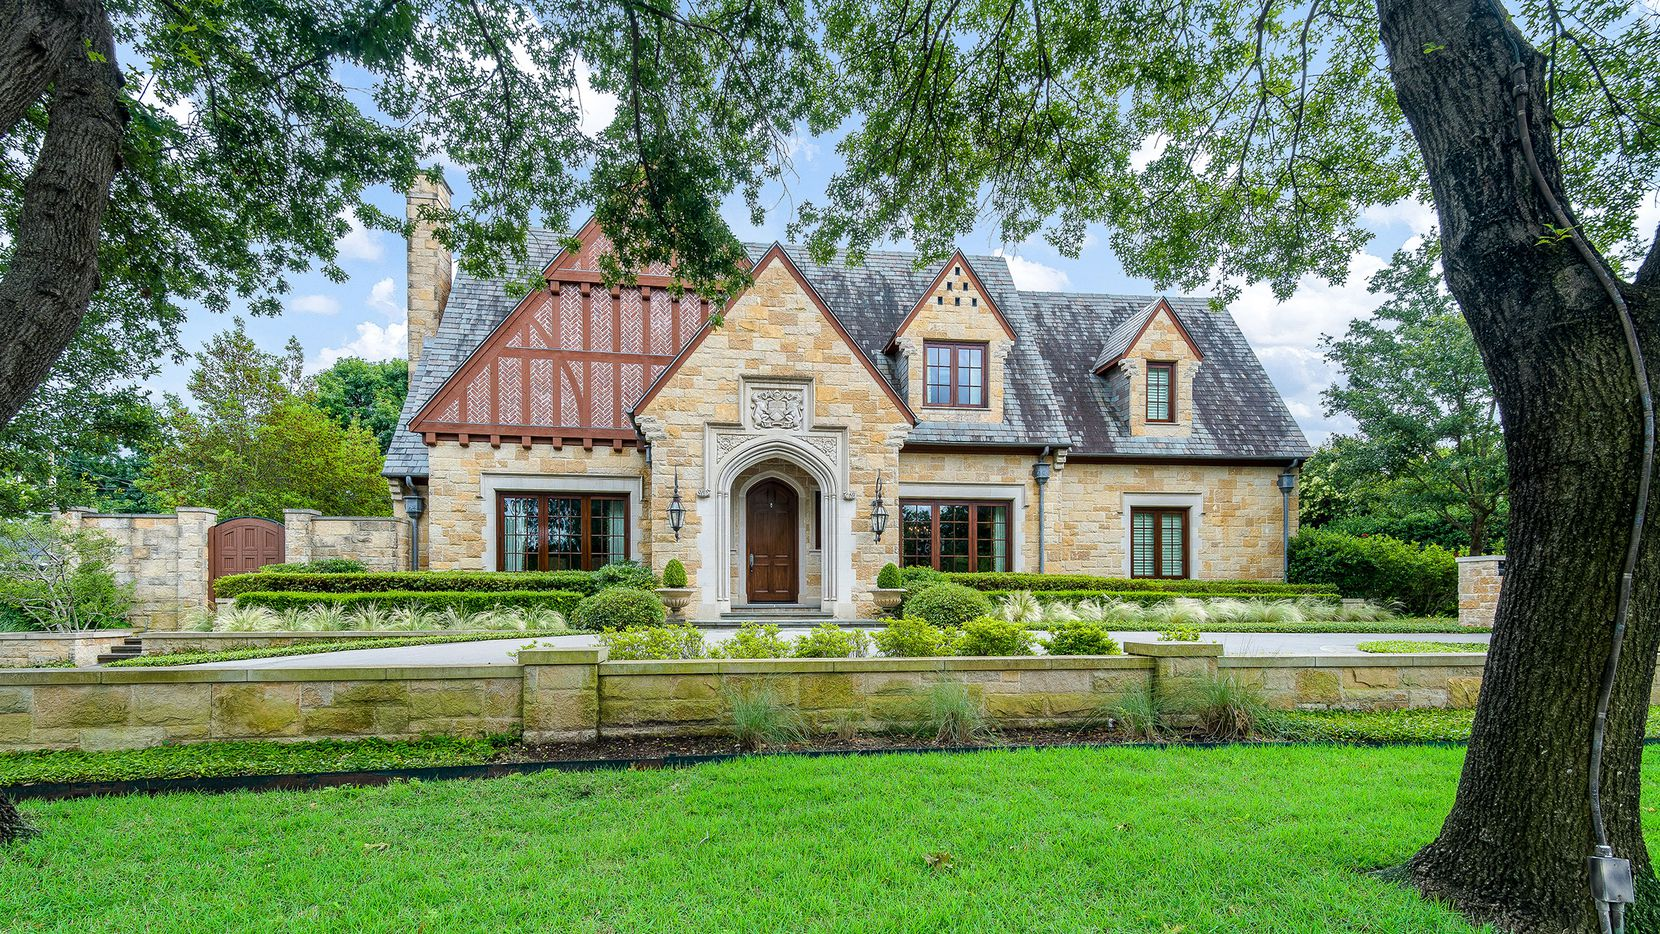 Listed at $3.5 million, the English Tudor-style home at 5638 Stonegate Road has an elevator and a gym with an attached spa with a plunge pool, sauna and steam room.